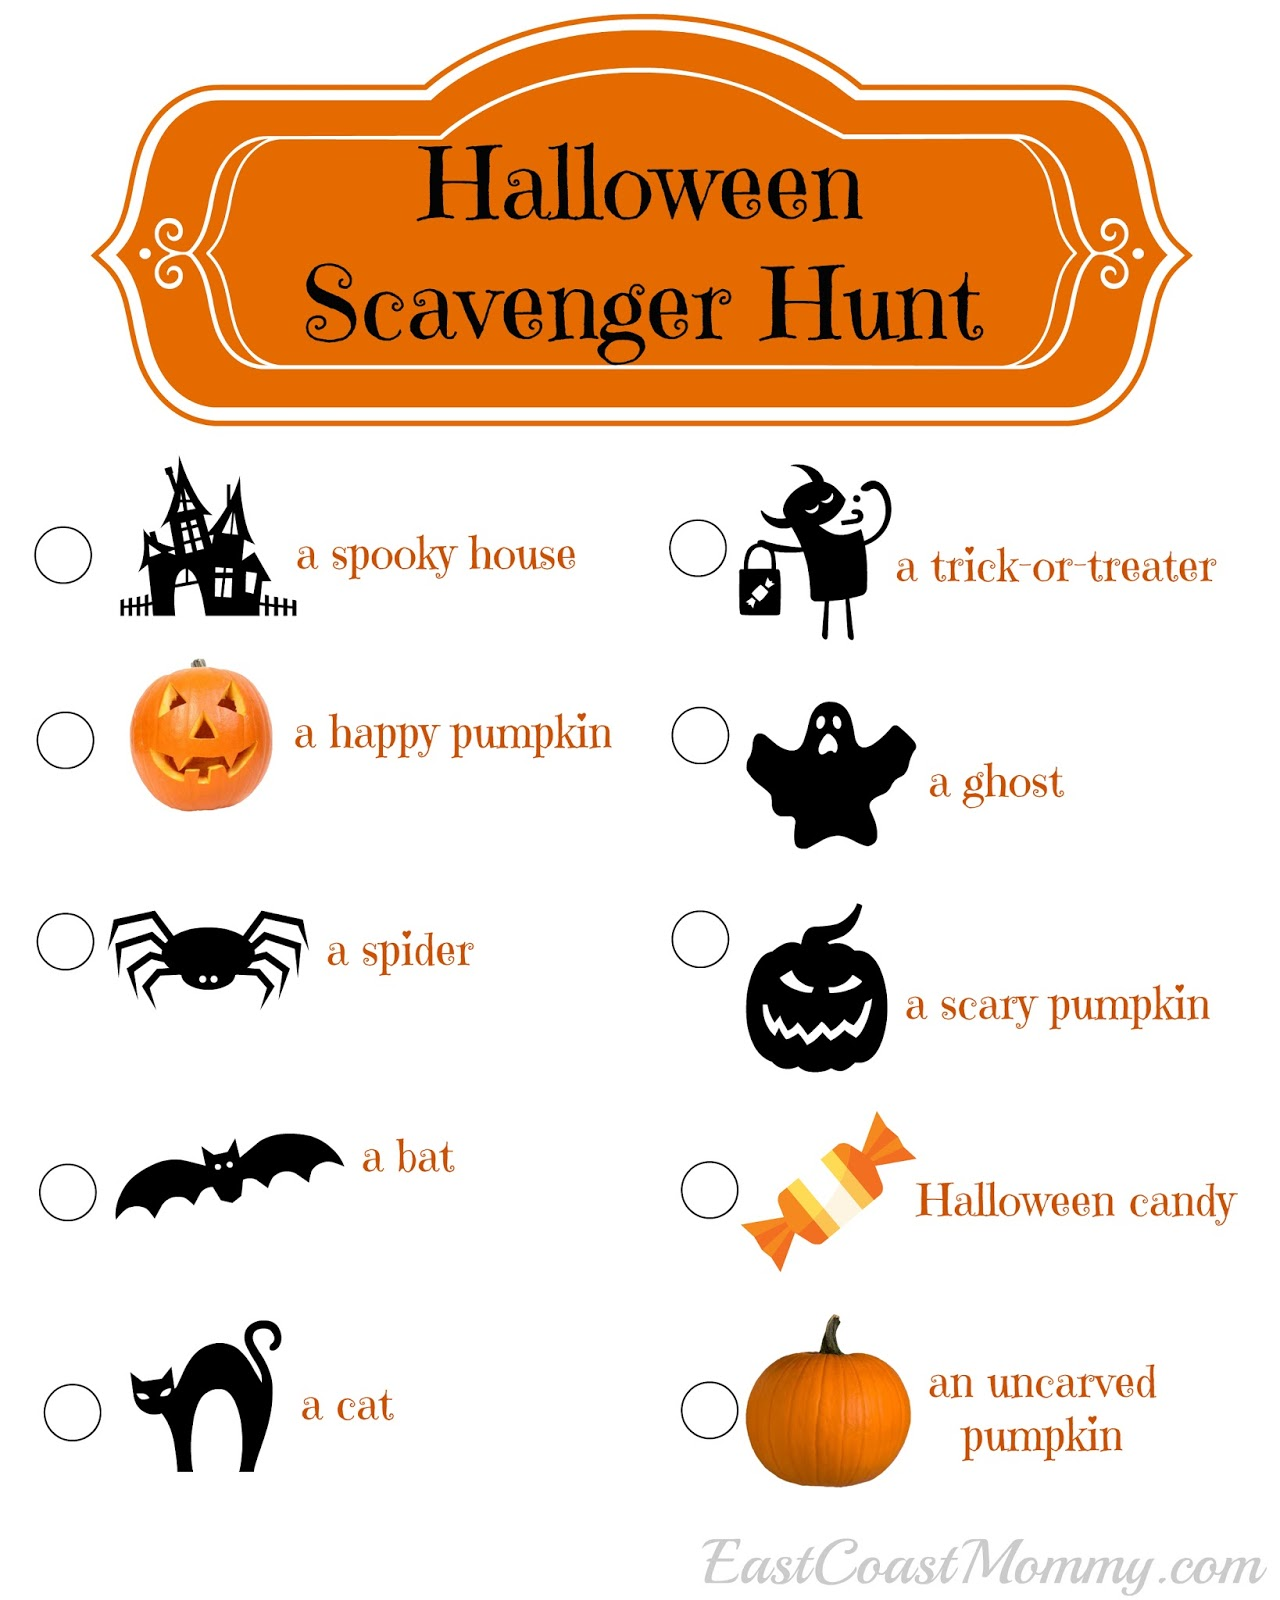 East Coast Mommy: Halloween Scavenger Hunt (with free printable)